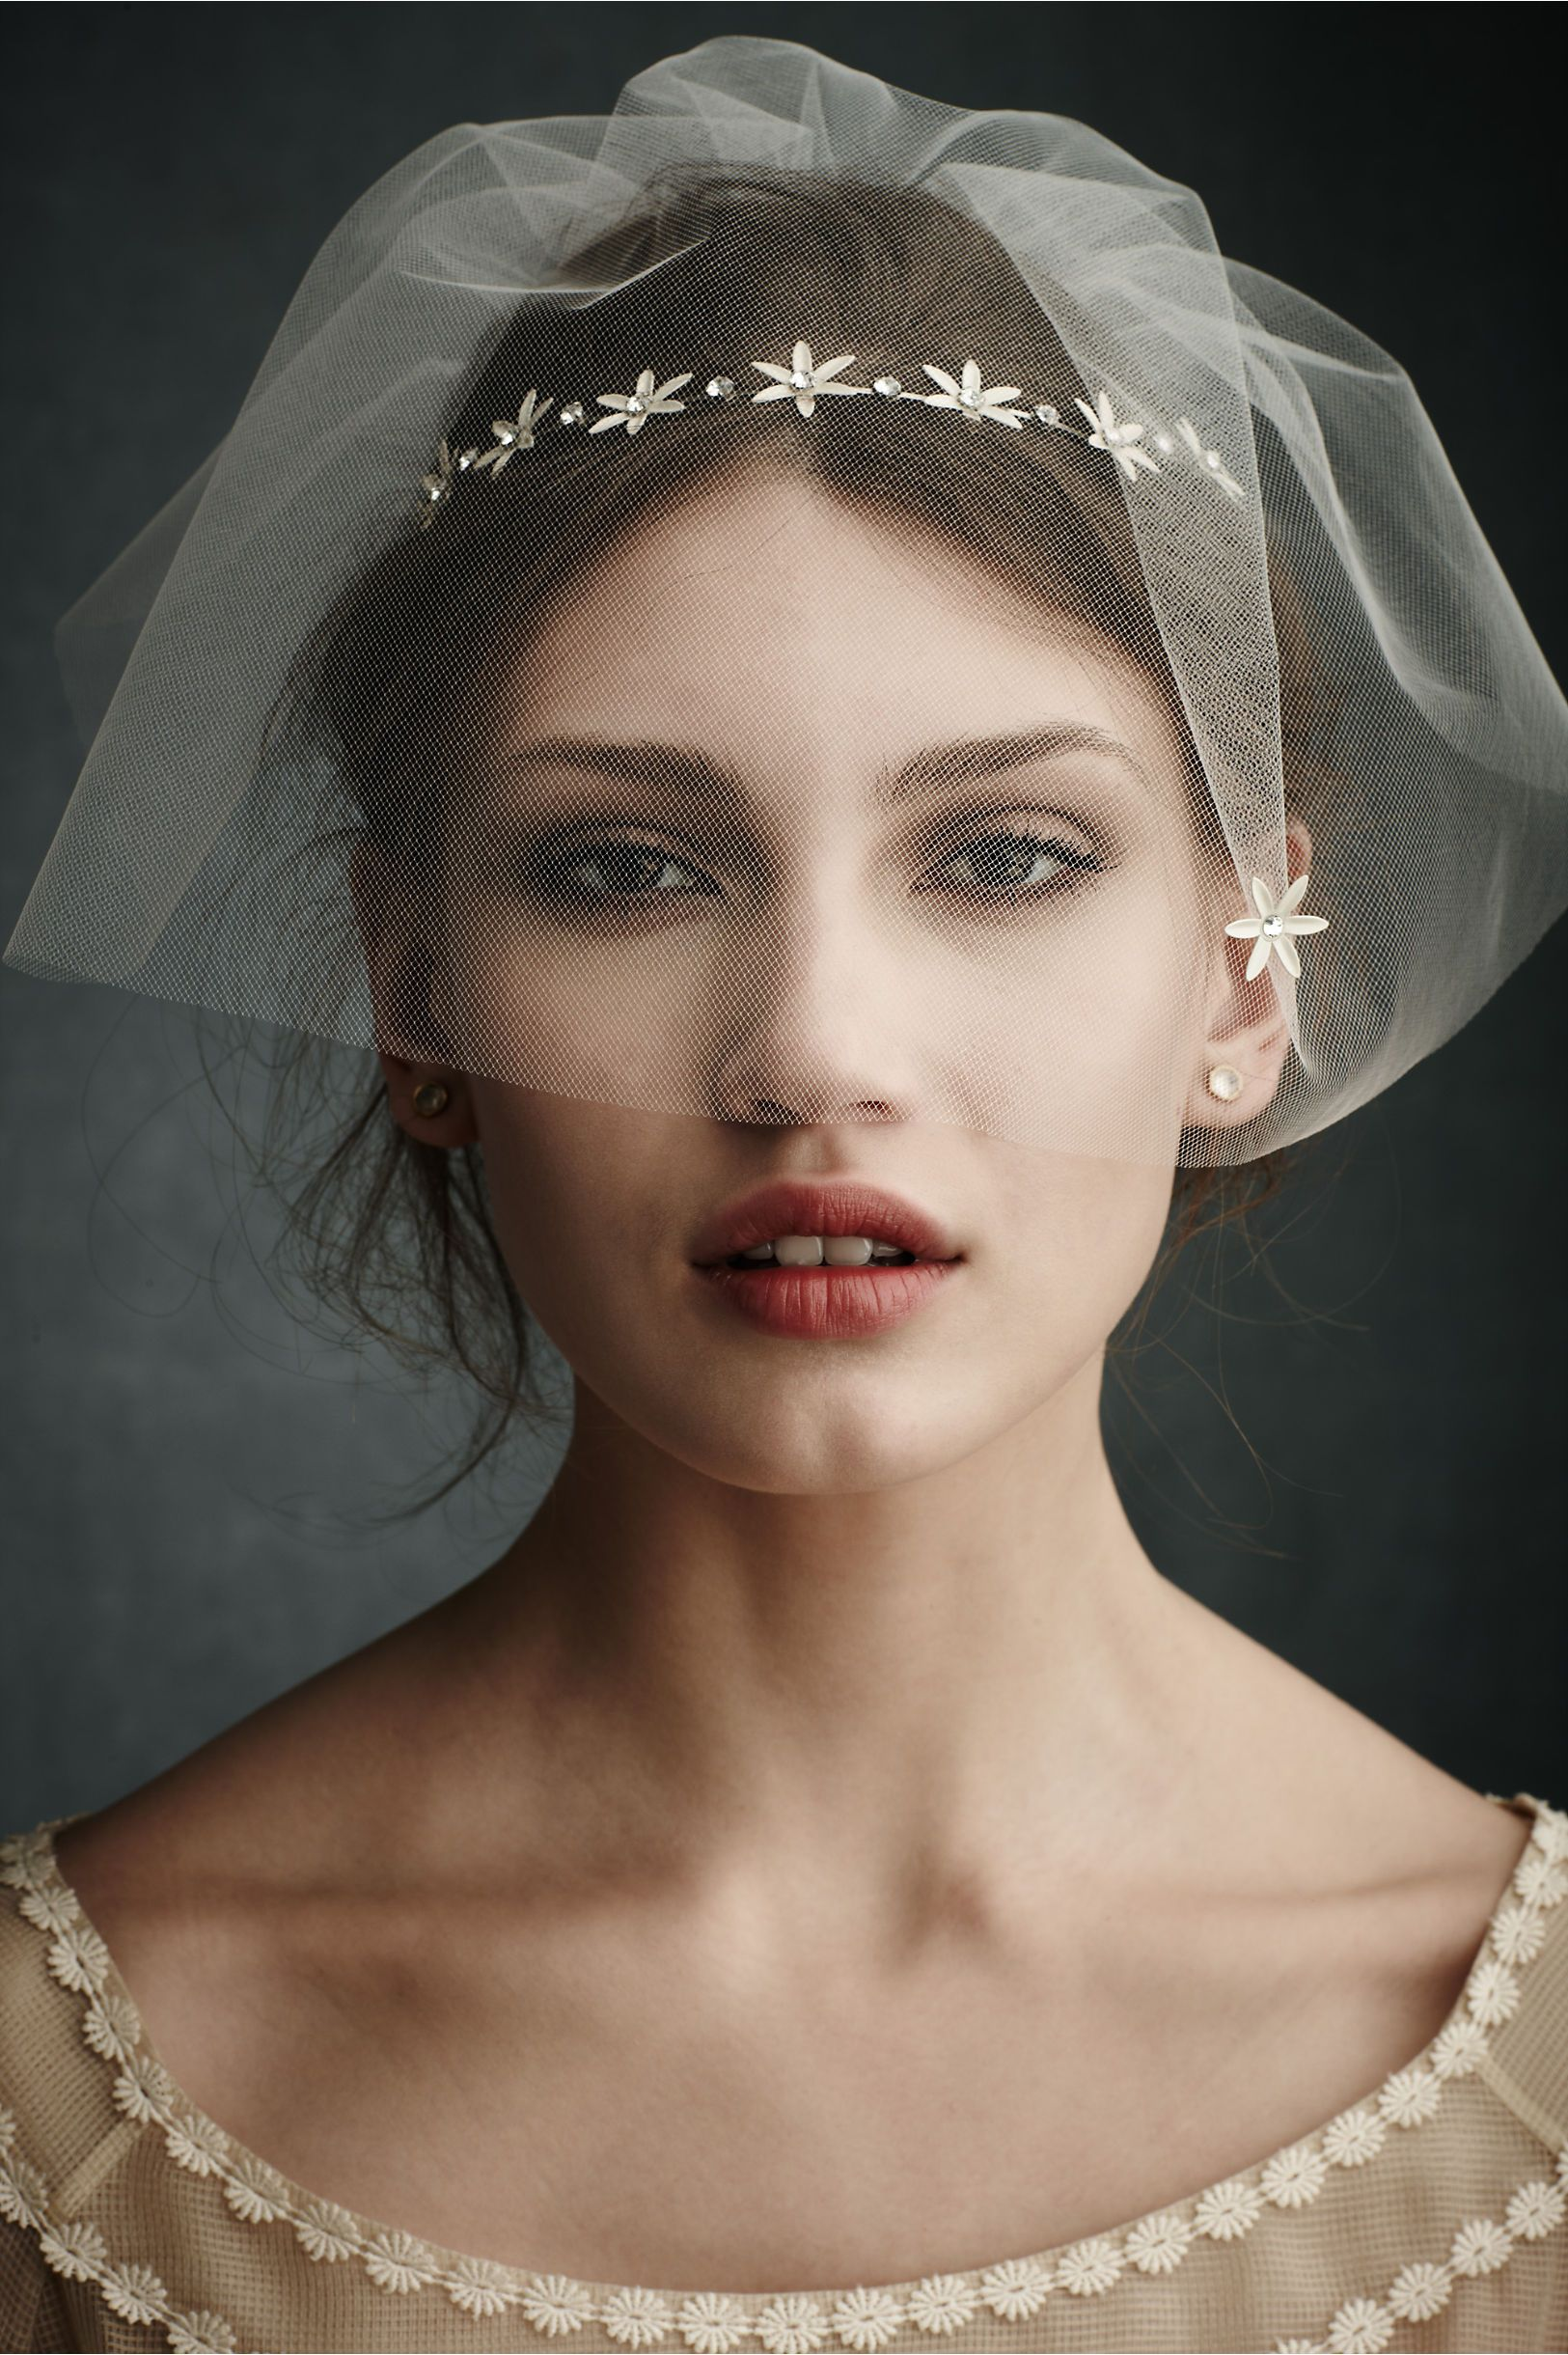 North Star Blusher Veil ❤ http://www.bhldn.com/shop-shoes-accessories-jewelry/